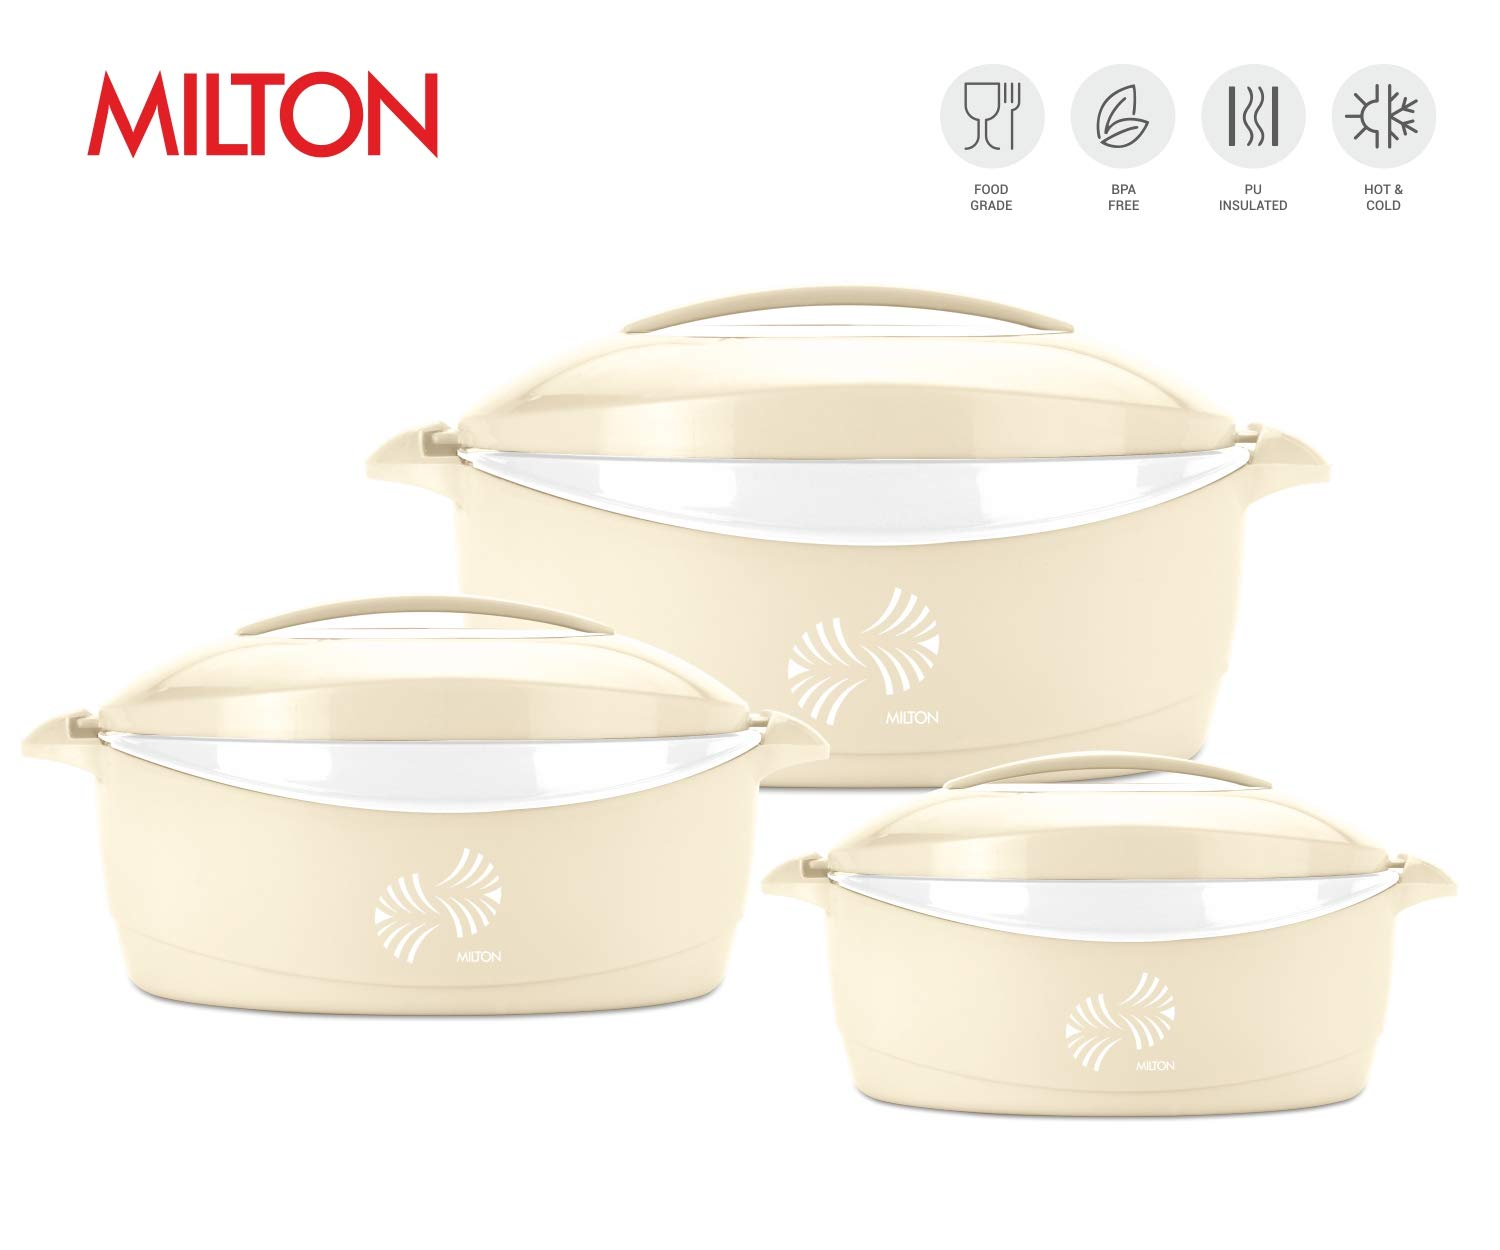 Milton Trumph 3 pc set (34oz/50oz/84 oz) Insulated Hot Pot/Casserole/Serving Bowl with Lid & Stainless Steel Inner - Keep food Hot/Cold upto 4-6 hrs (Beige/White)